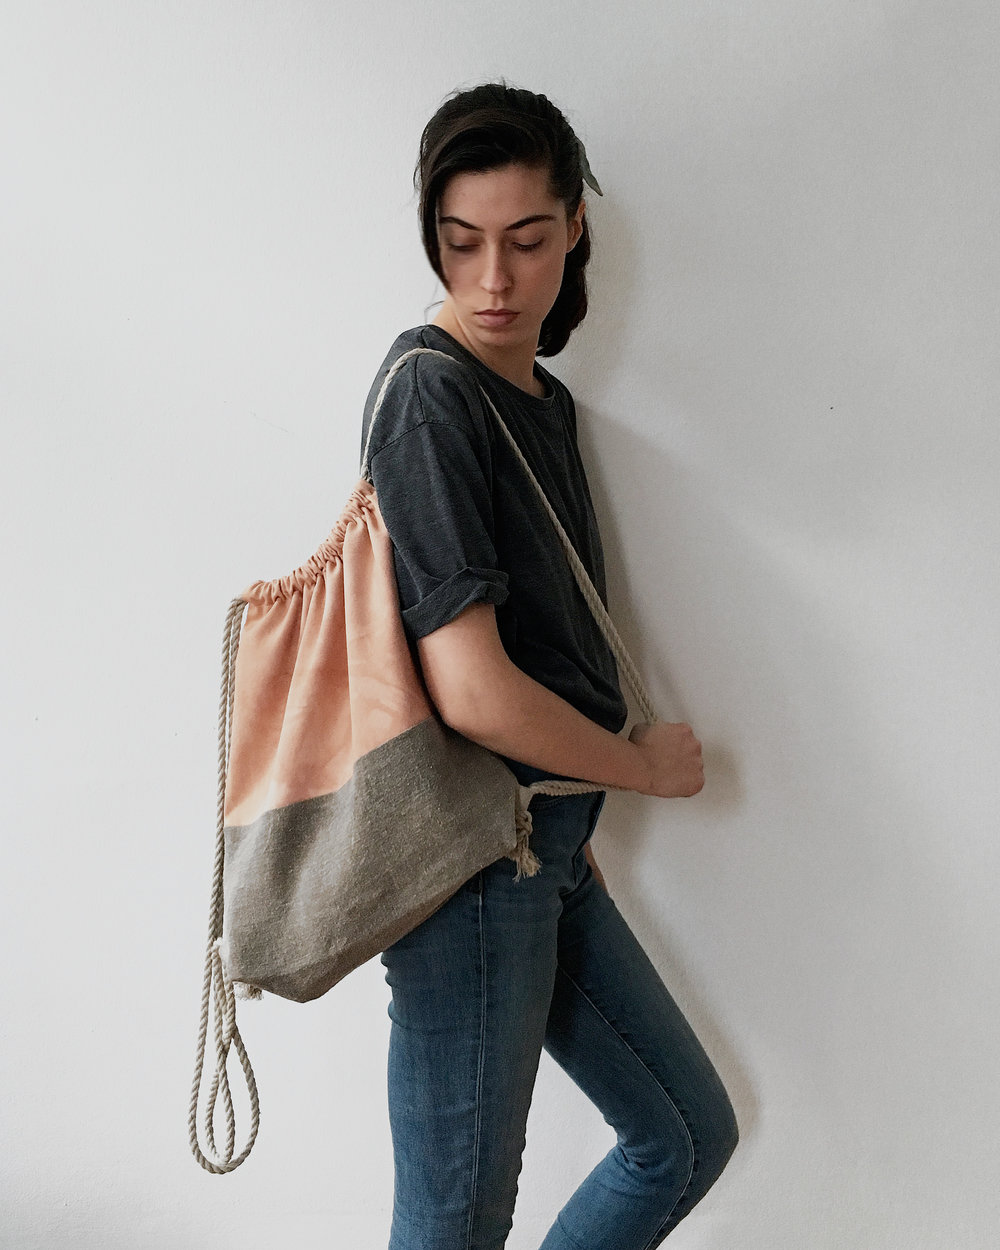 These sustainable drawstring backpacks were dyed with plants